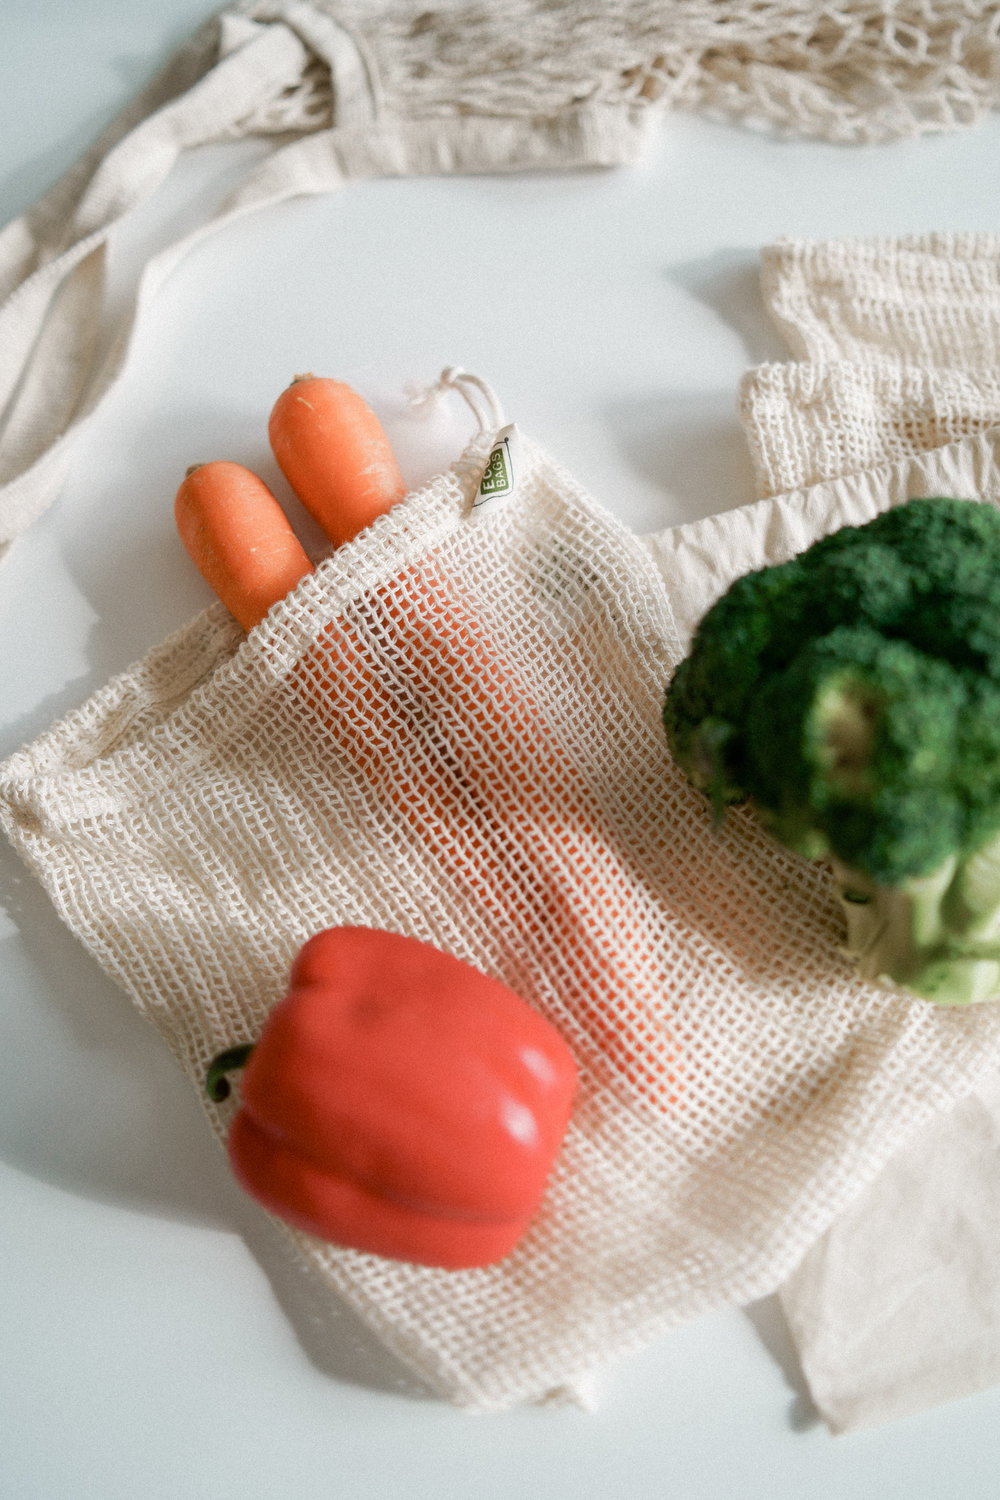 2. Stop using plastic produce bags -